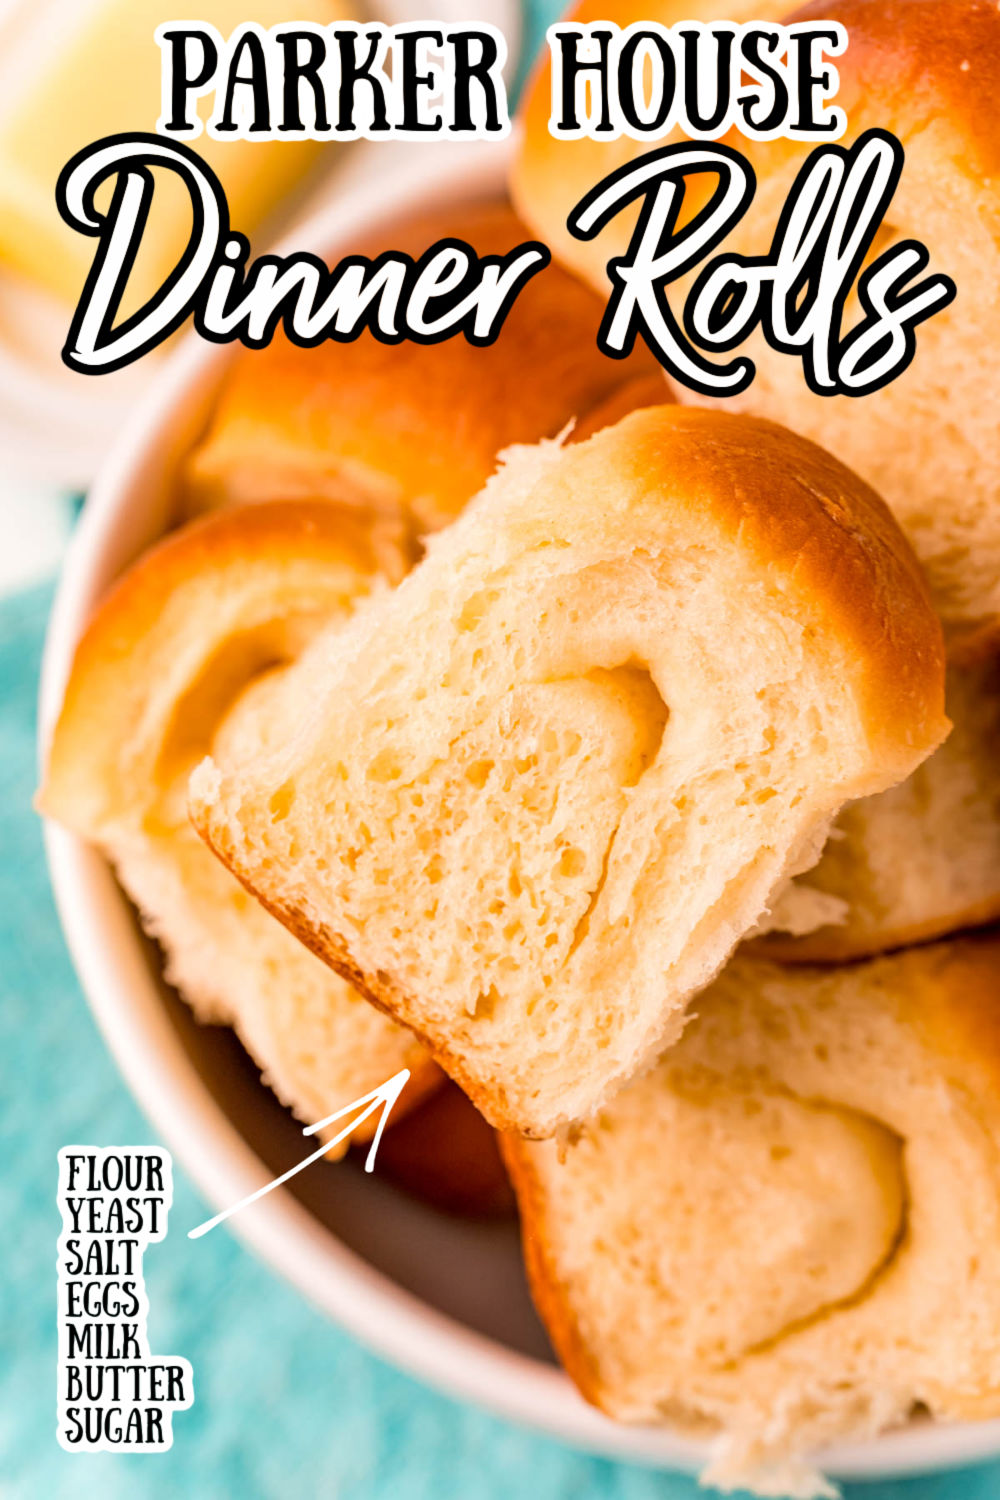 Parker House Rolls are incredibly buttery and rich while being perfectly fluffy, these yeast rolls will be a stand-out at your next family dinner! via @sugarandsoulco